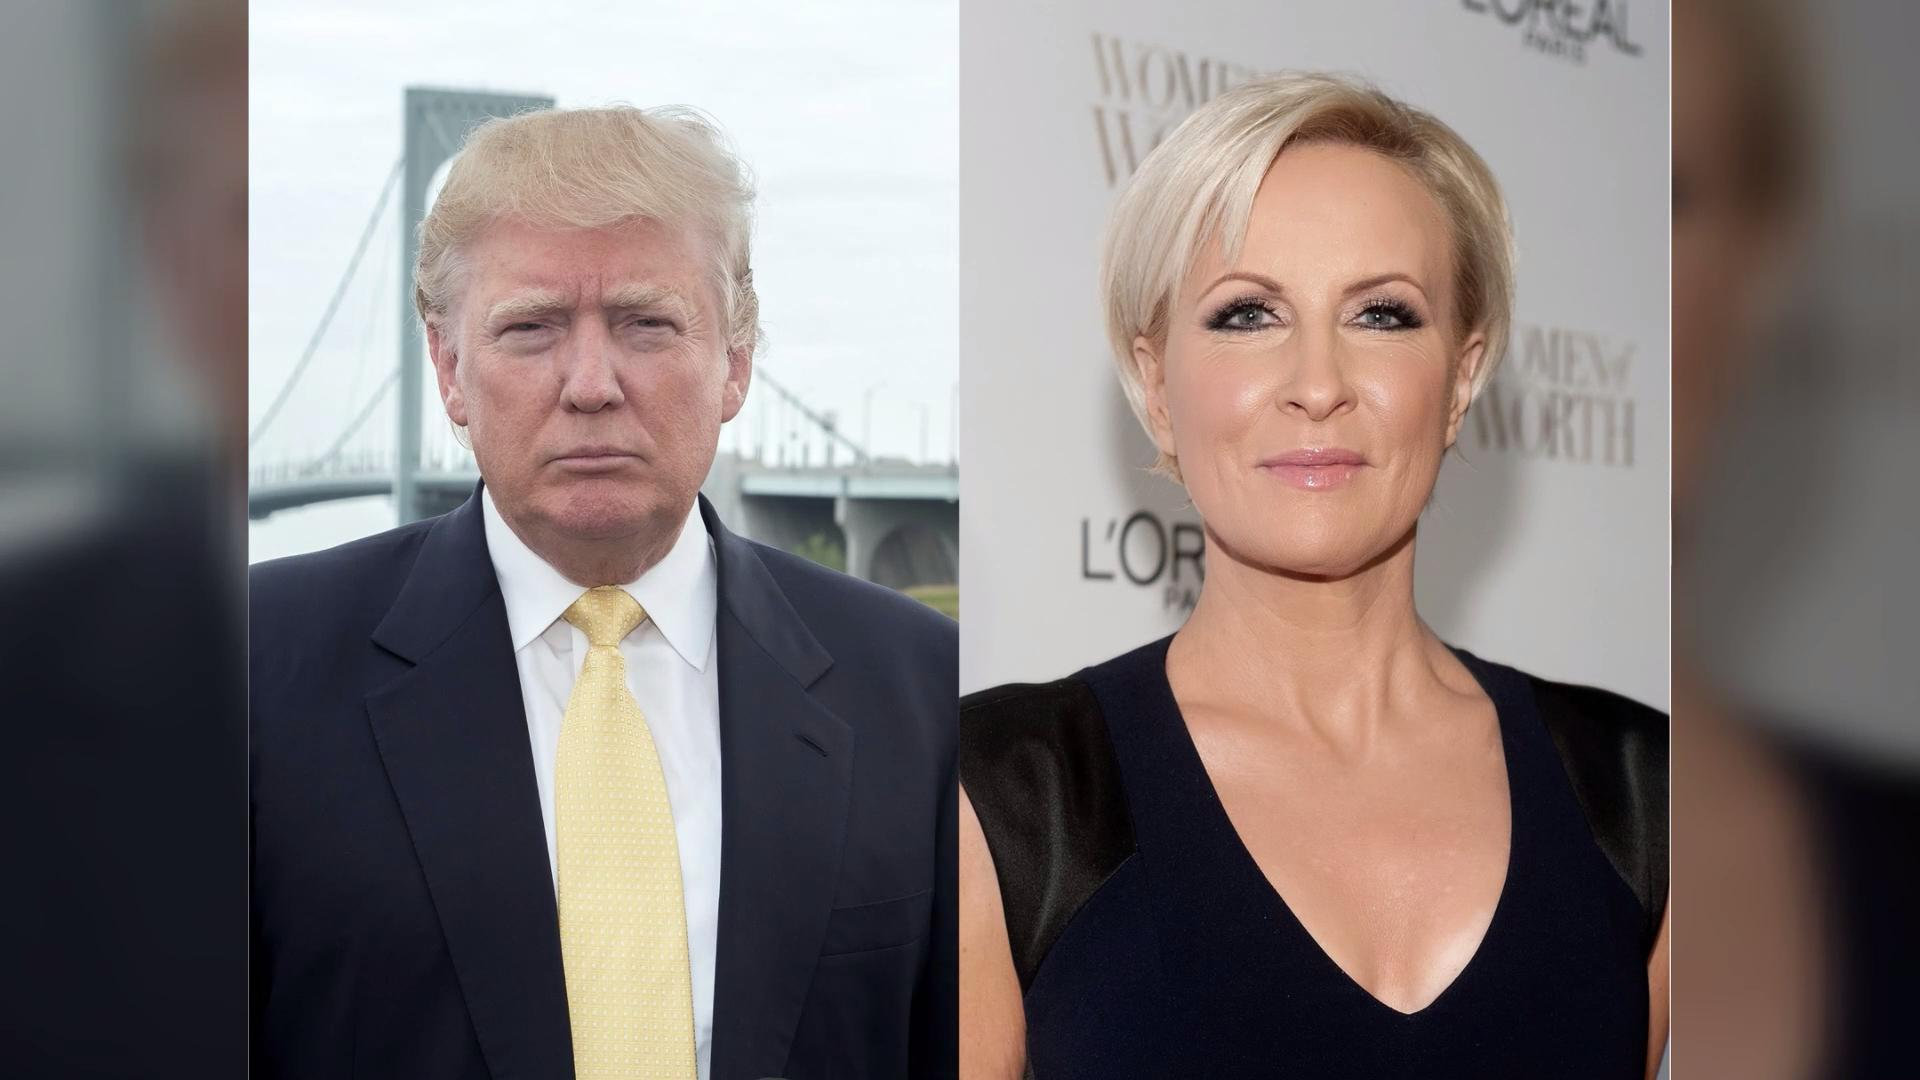 President Trump Launches Twitter Attack on Morning Joe Co ...